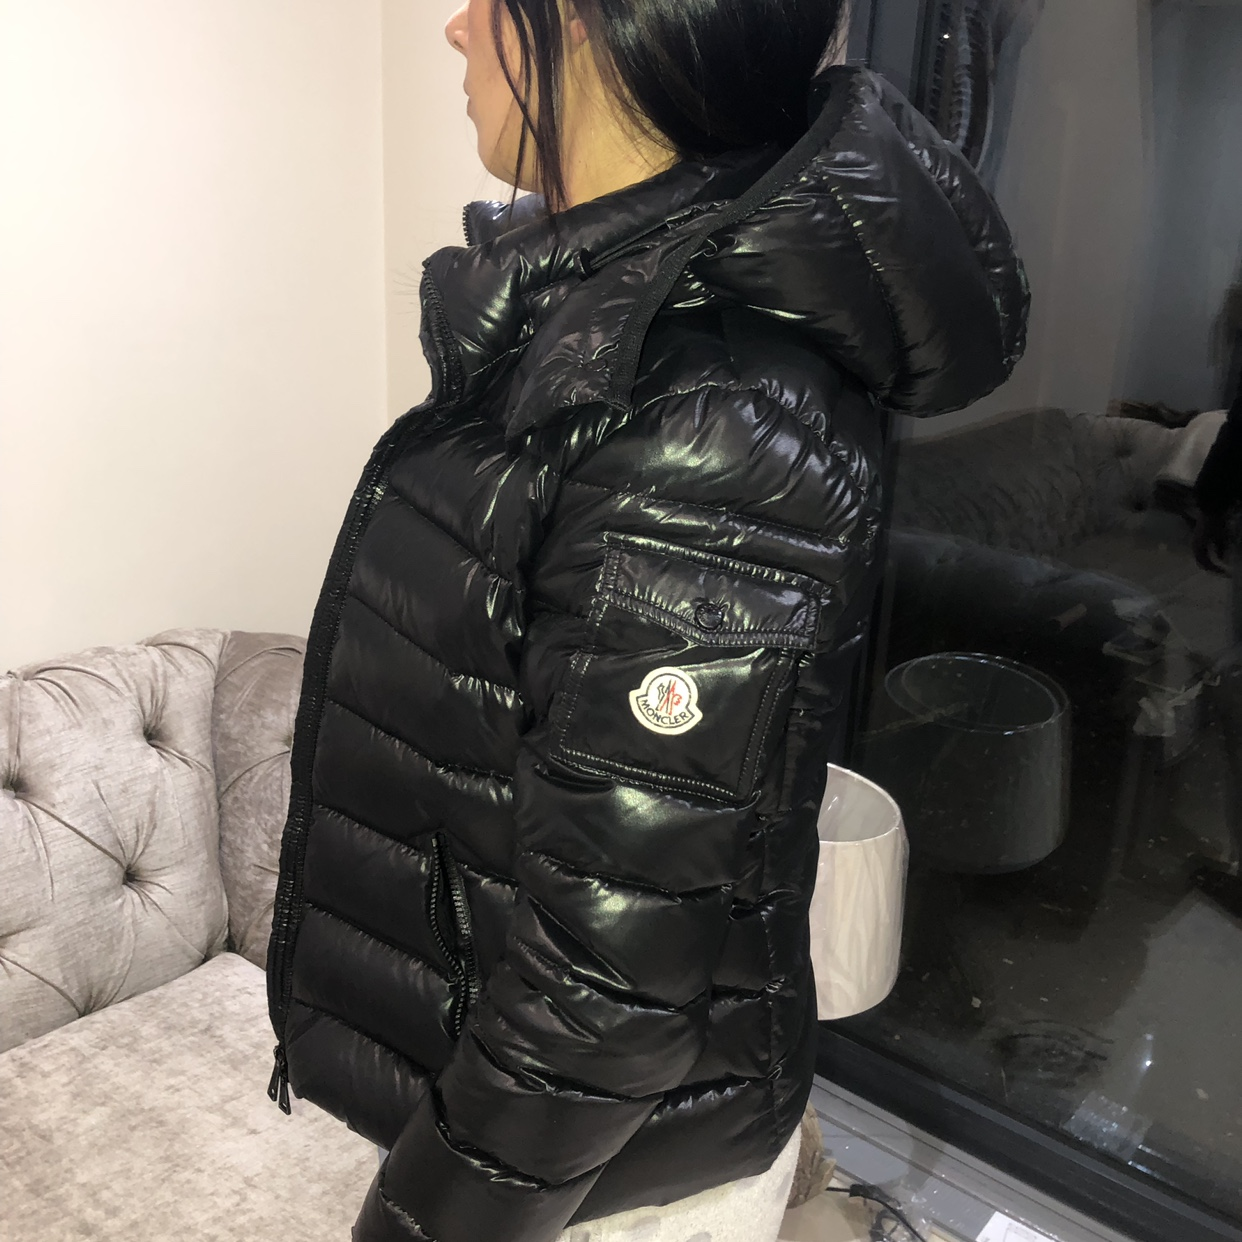 new product 11f35 7f795 WOMENS MONCLER BADY COAT. Black, size 2, (which is... - Depop